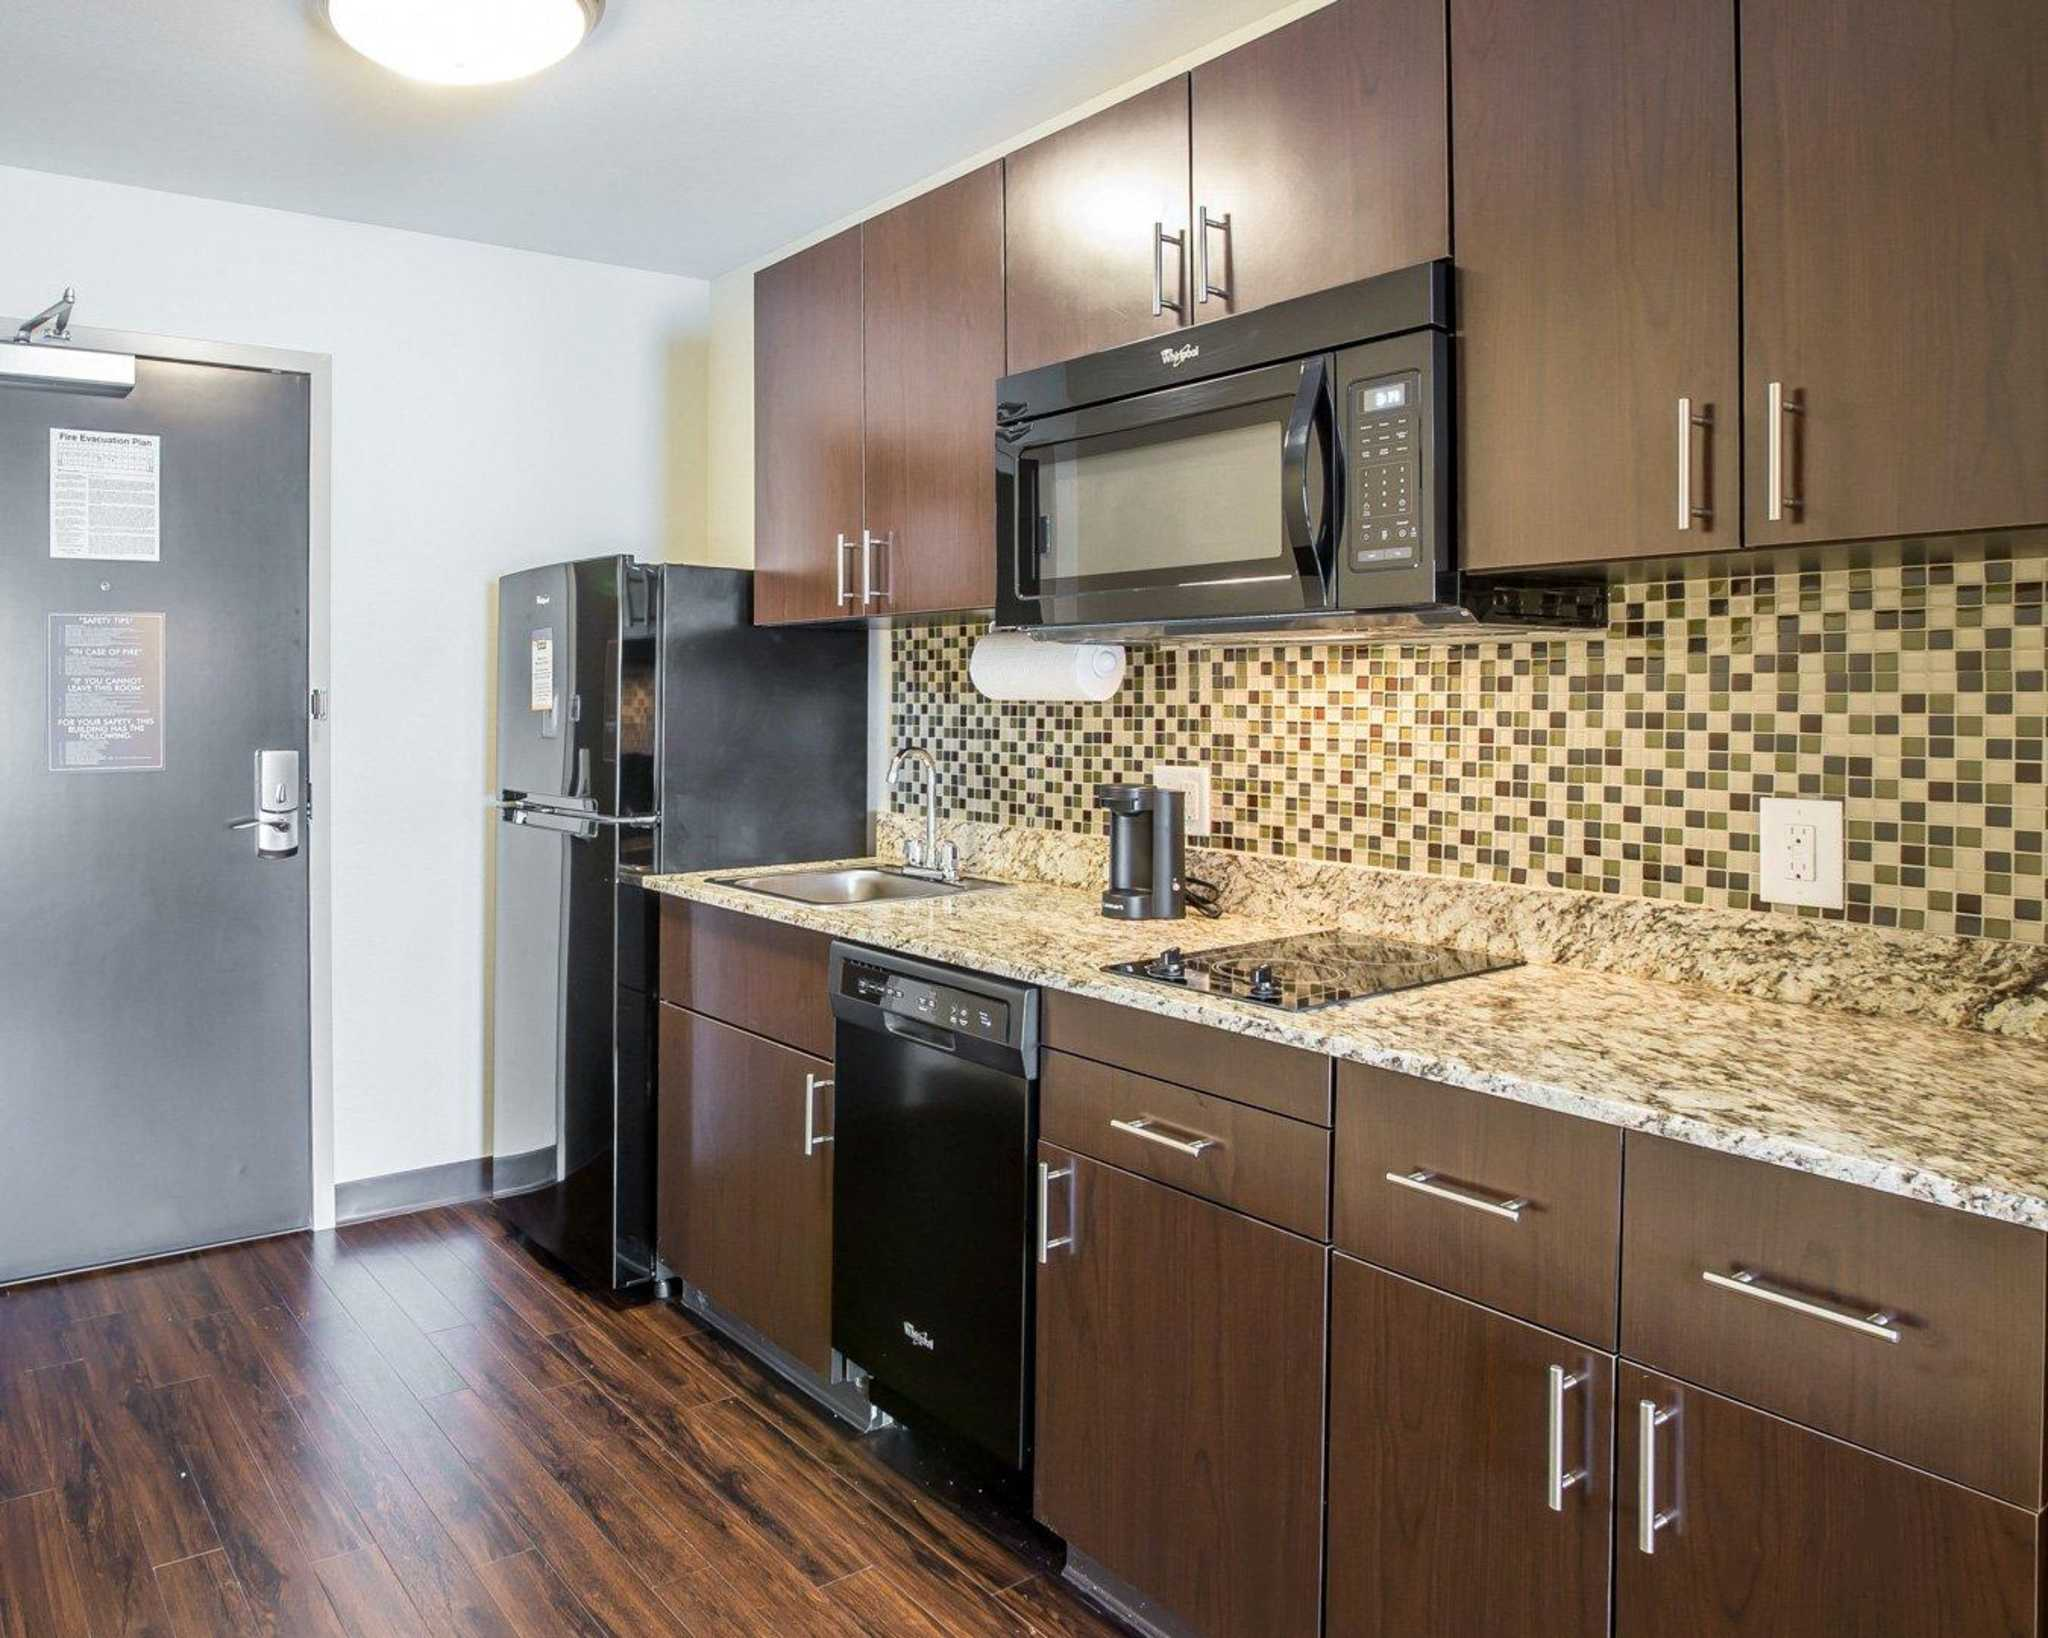 MainStay Suites Cartersville - Emerson Lake Point image 22